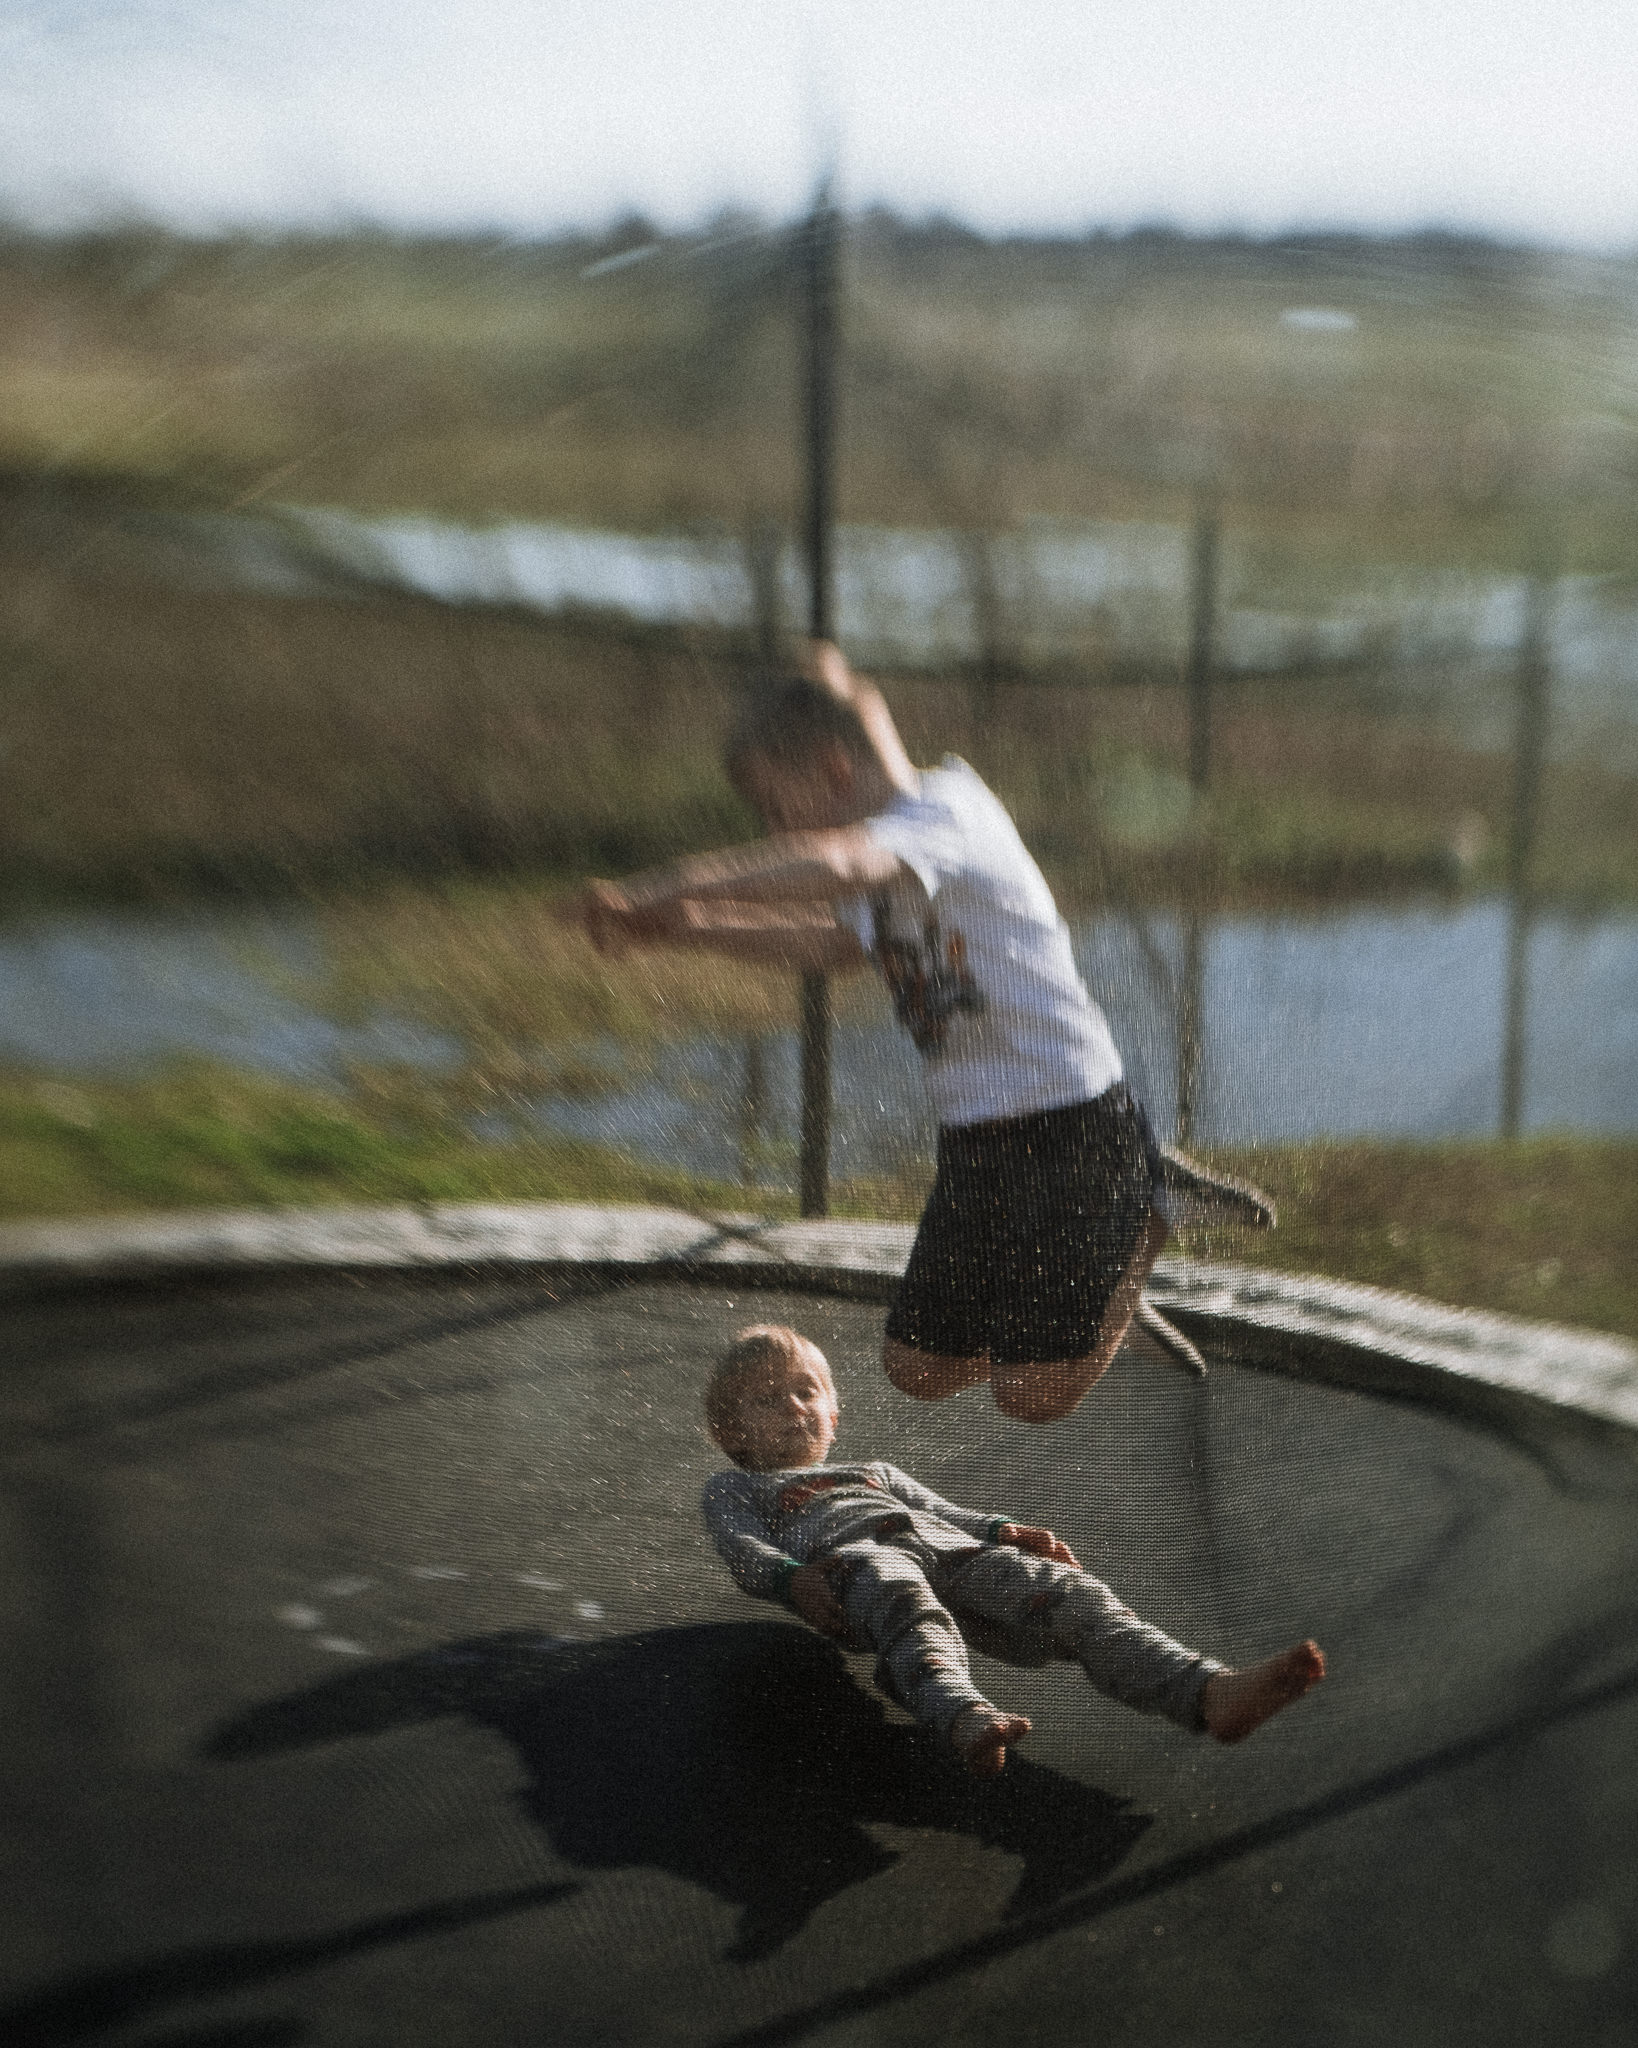 lensbaby-sol45-our-unscripted-life-02.jpg